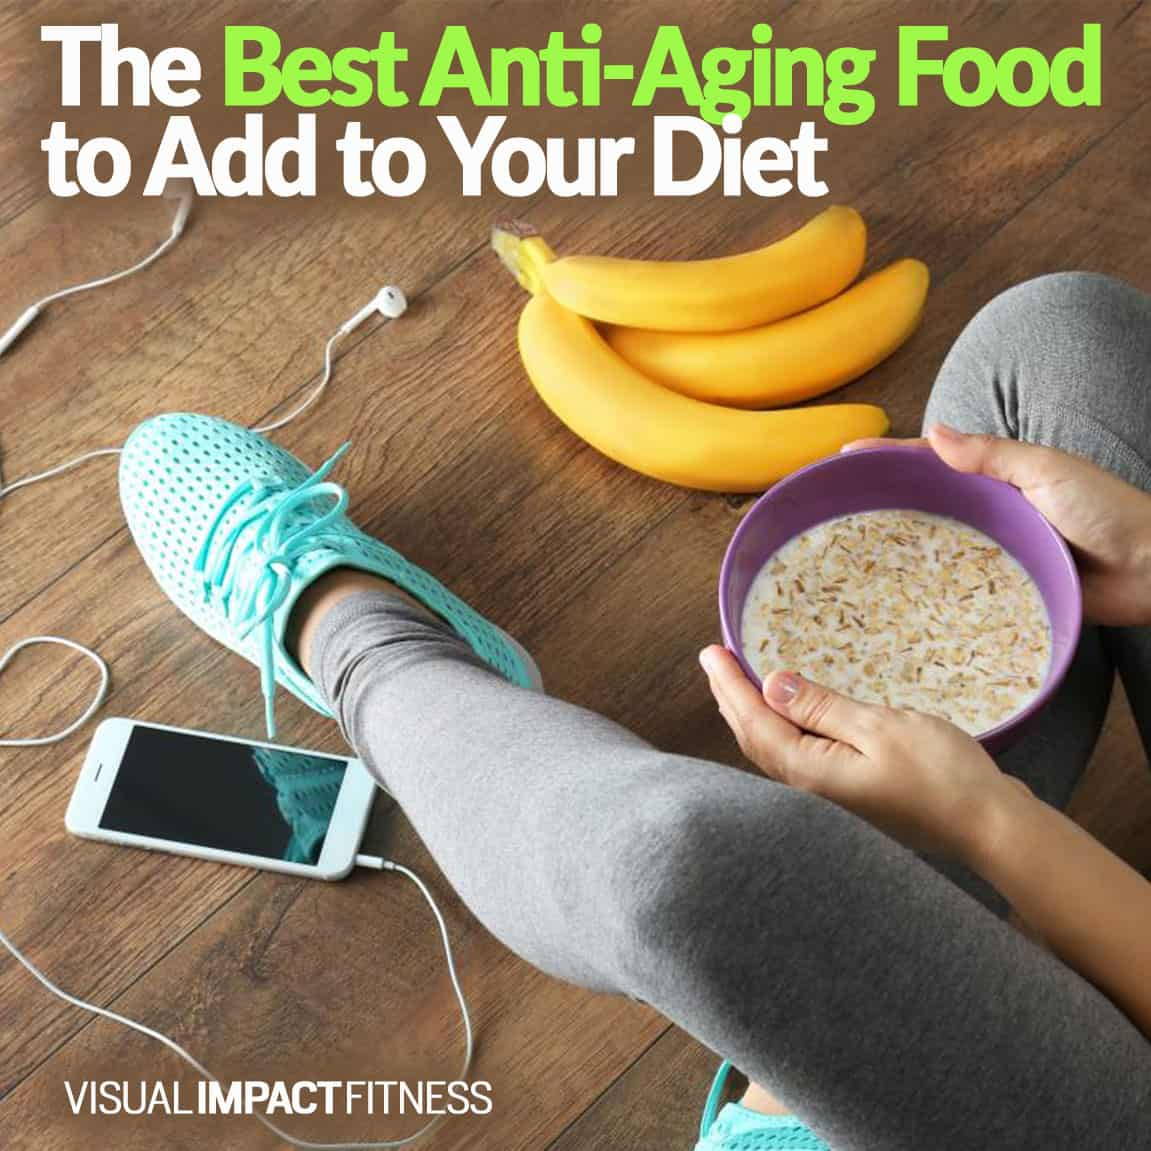 The Best Anti-Aging Food to Add Your Diet